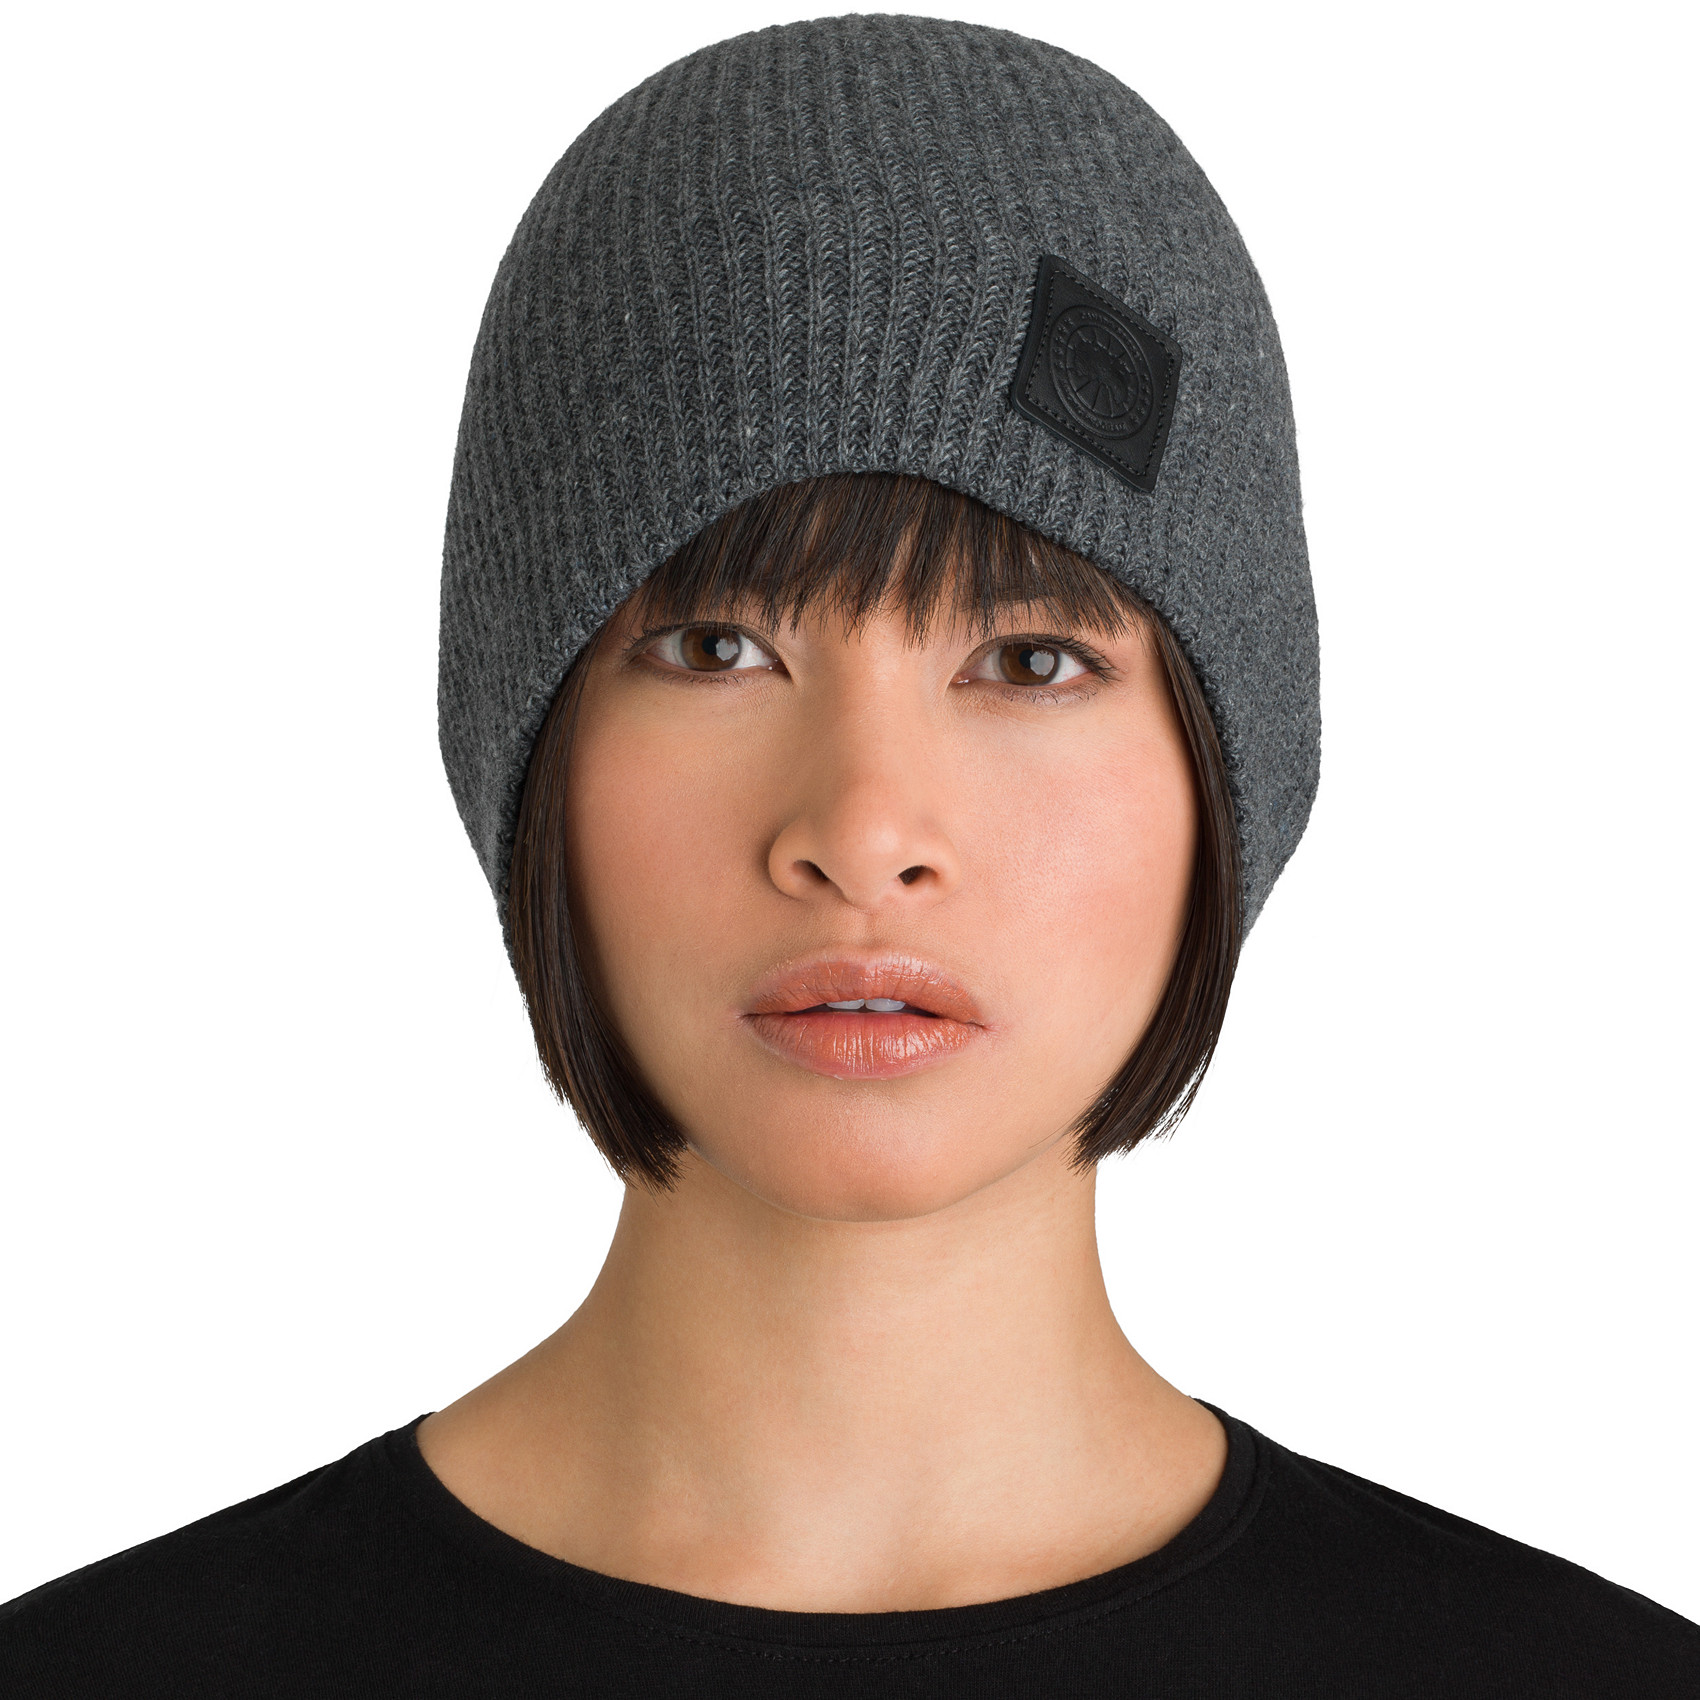 b640976bf9c6a Cable Knit Merino Wool Beanie Canada Goose - fortyninegroup